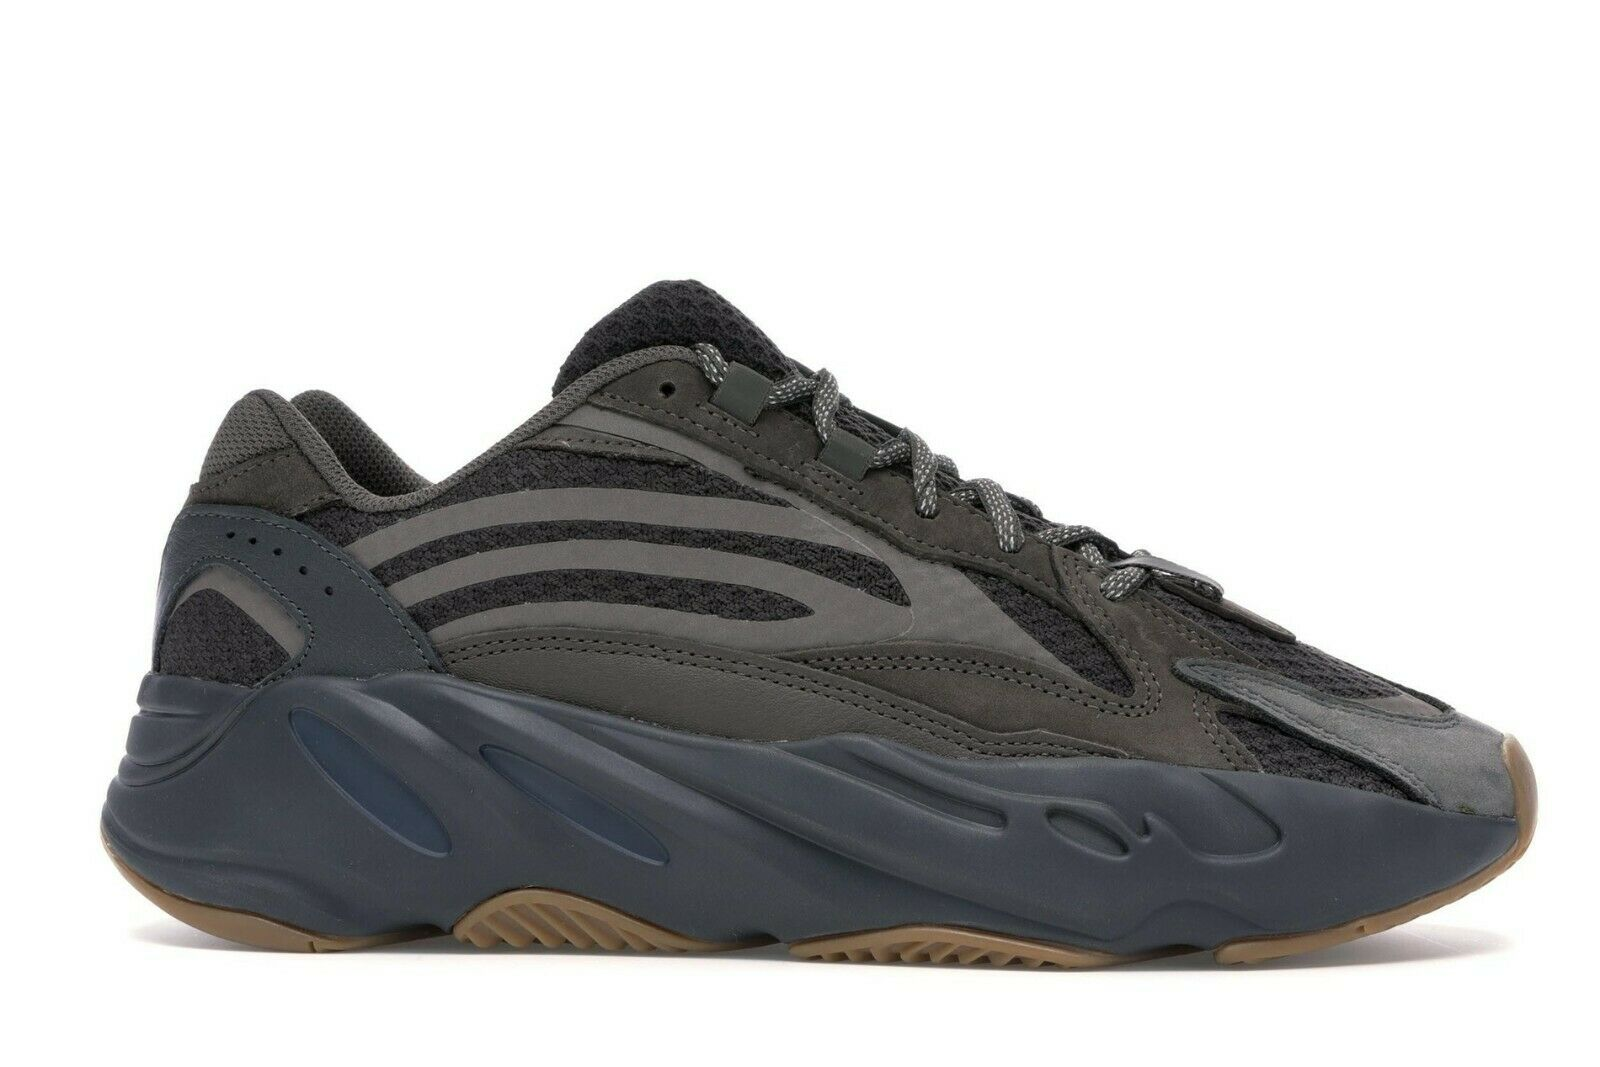 Adidas Yeezy Boost 700 GEODE Grey YZY Kanye 100% AUTHENTIC EG6860 Size 6